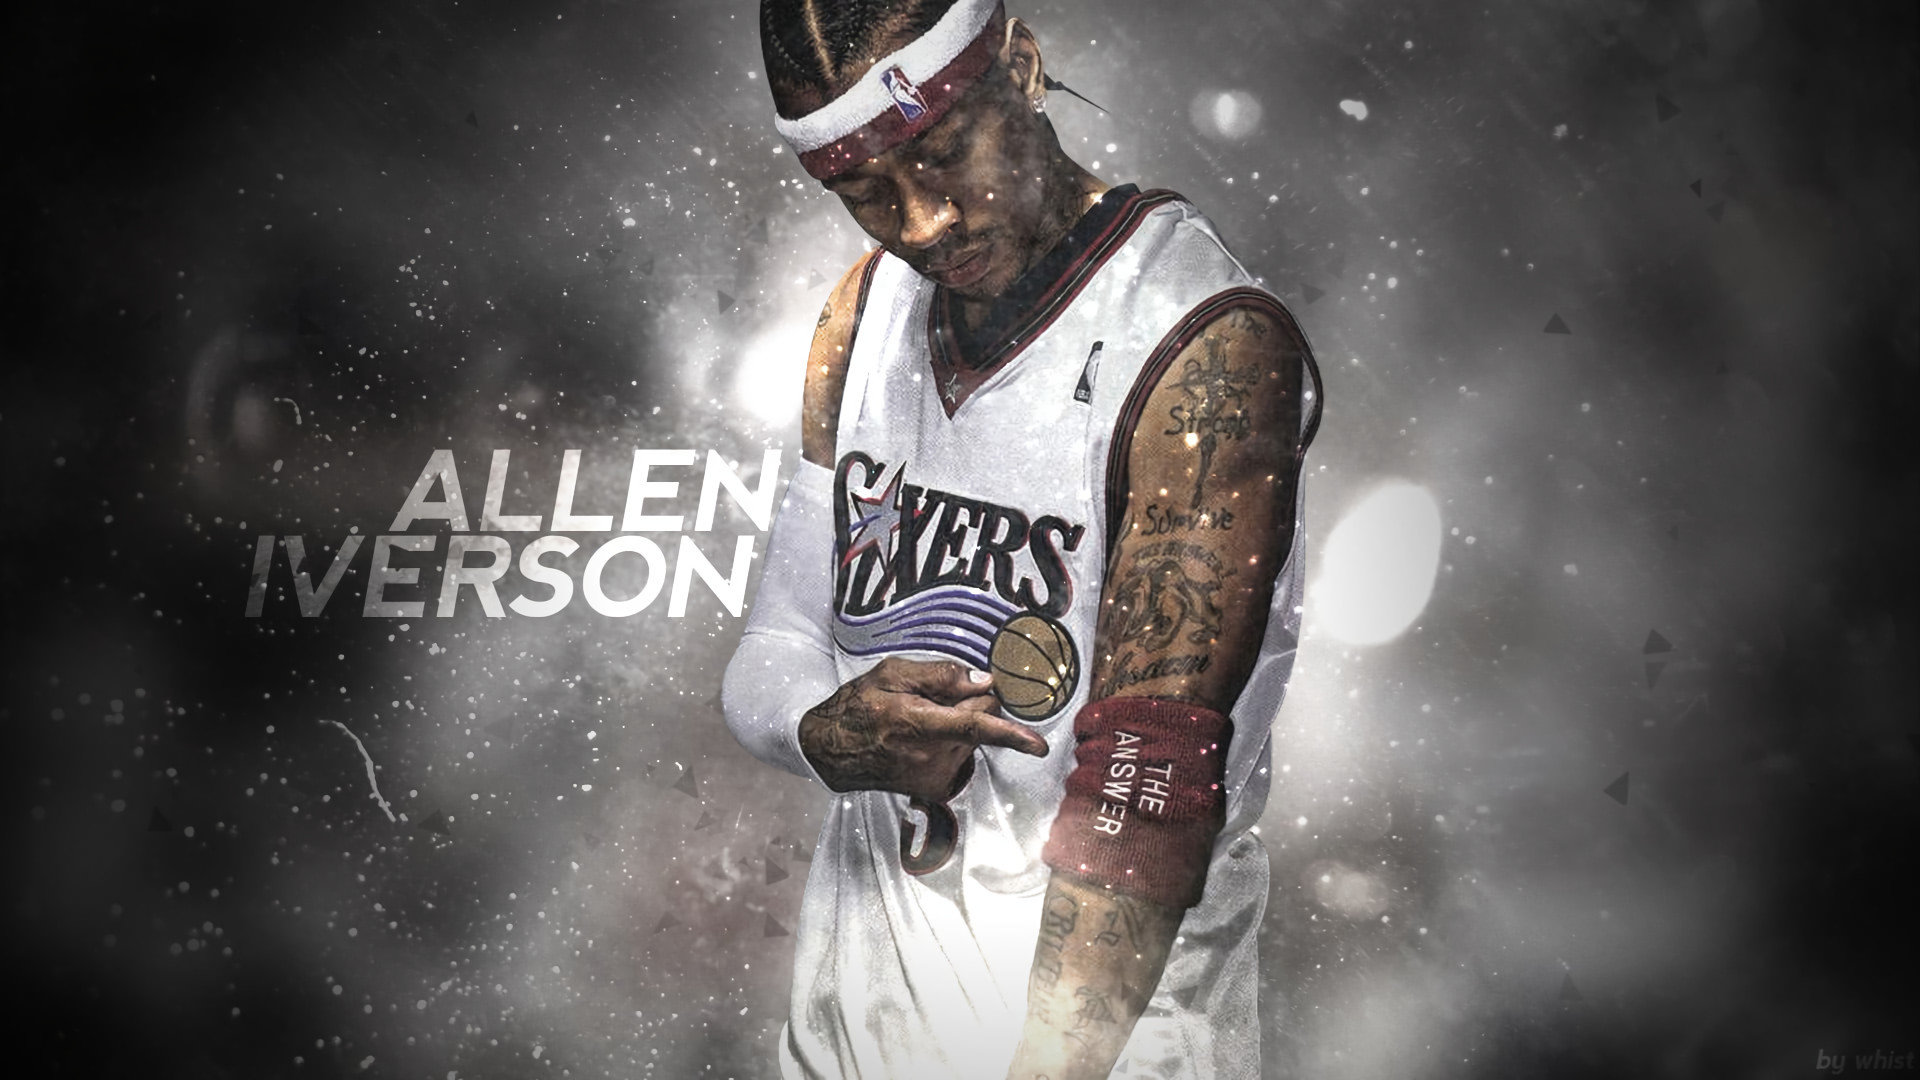 Free Allen Iverson high quality wallpaper ID:53368 for hd 1080p desktop